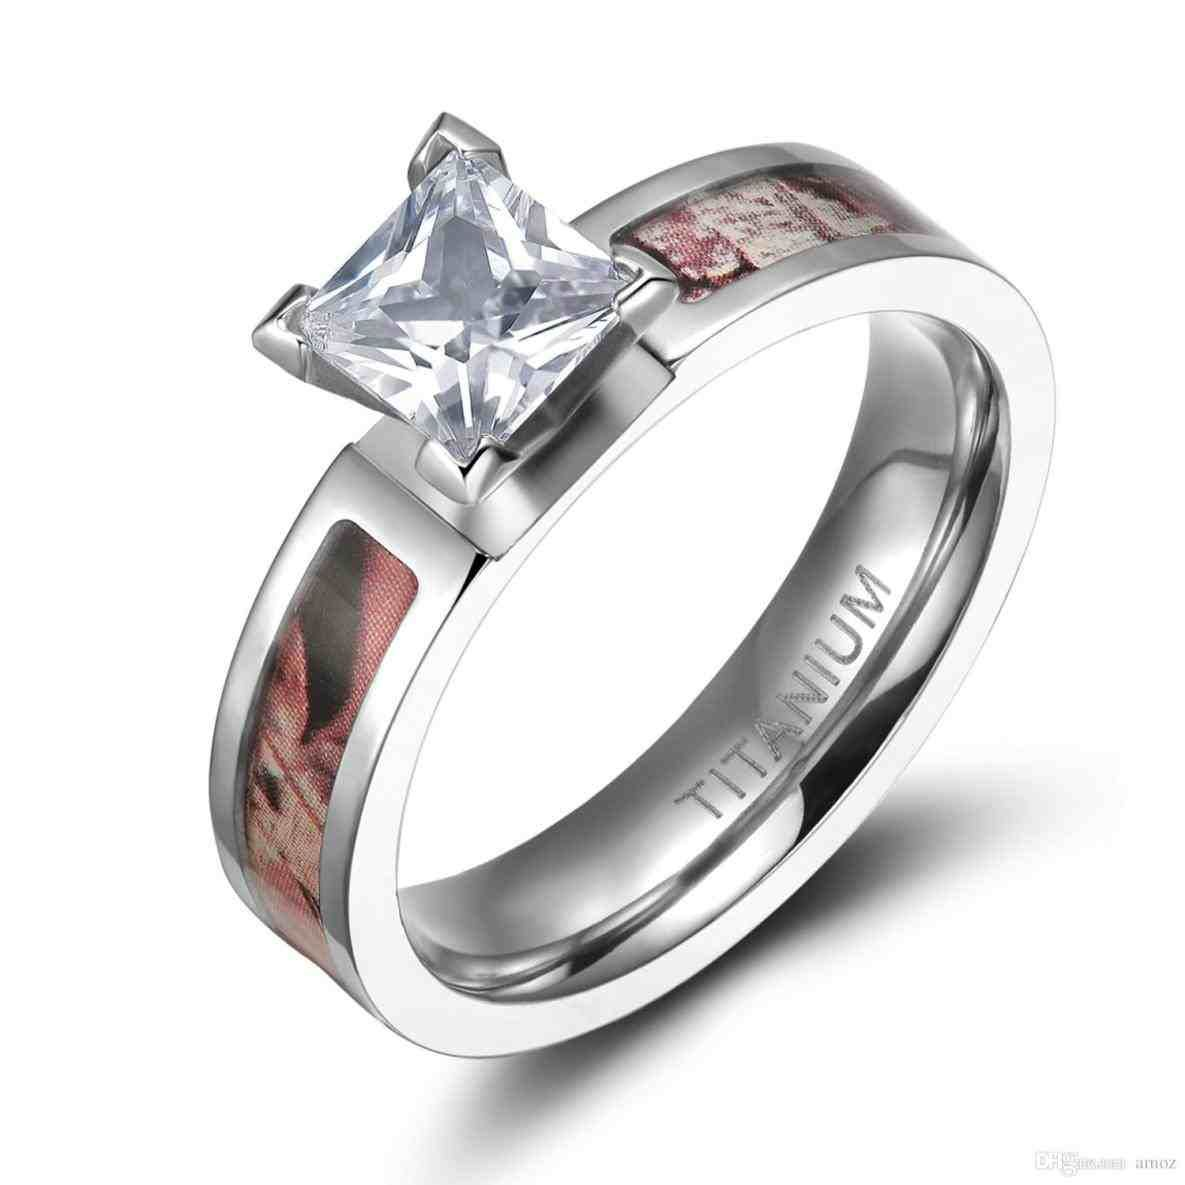 TOP +10 New Post White Camo Wedding Rings Visit Wedbridal.site